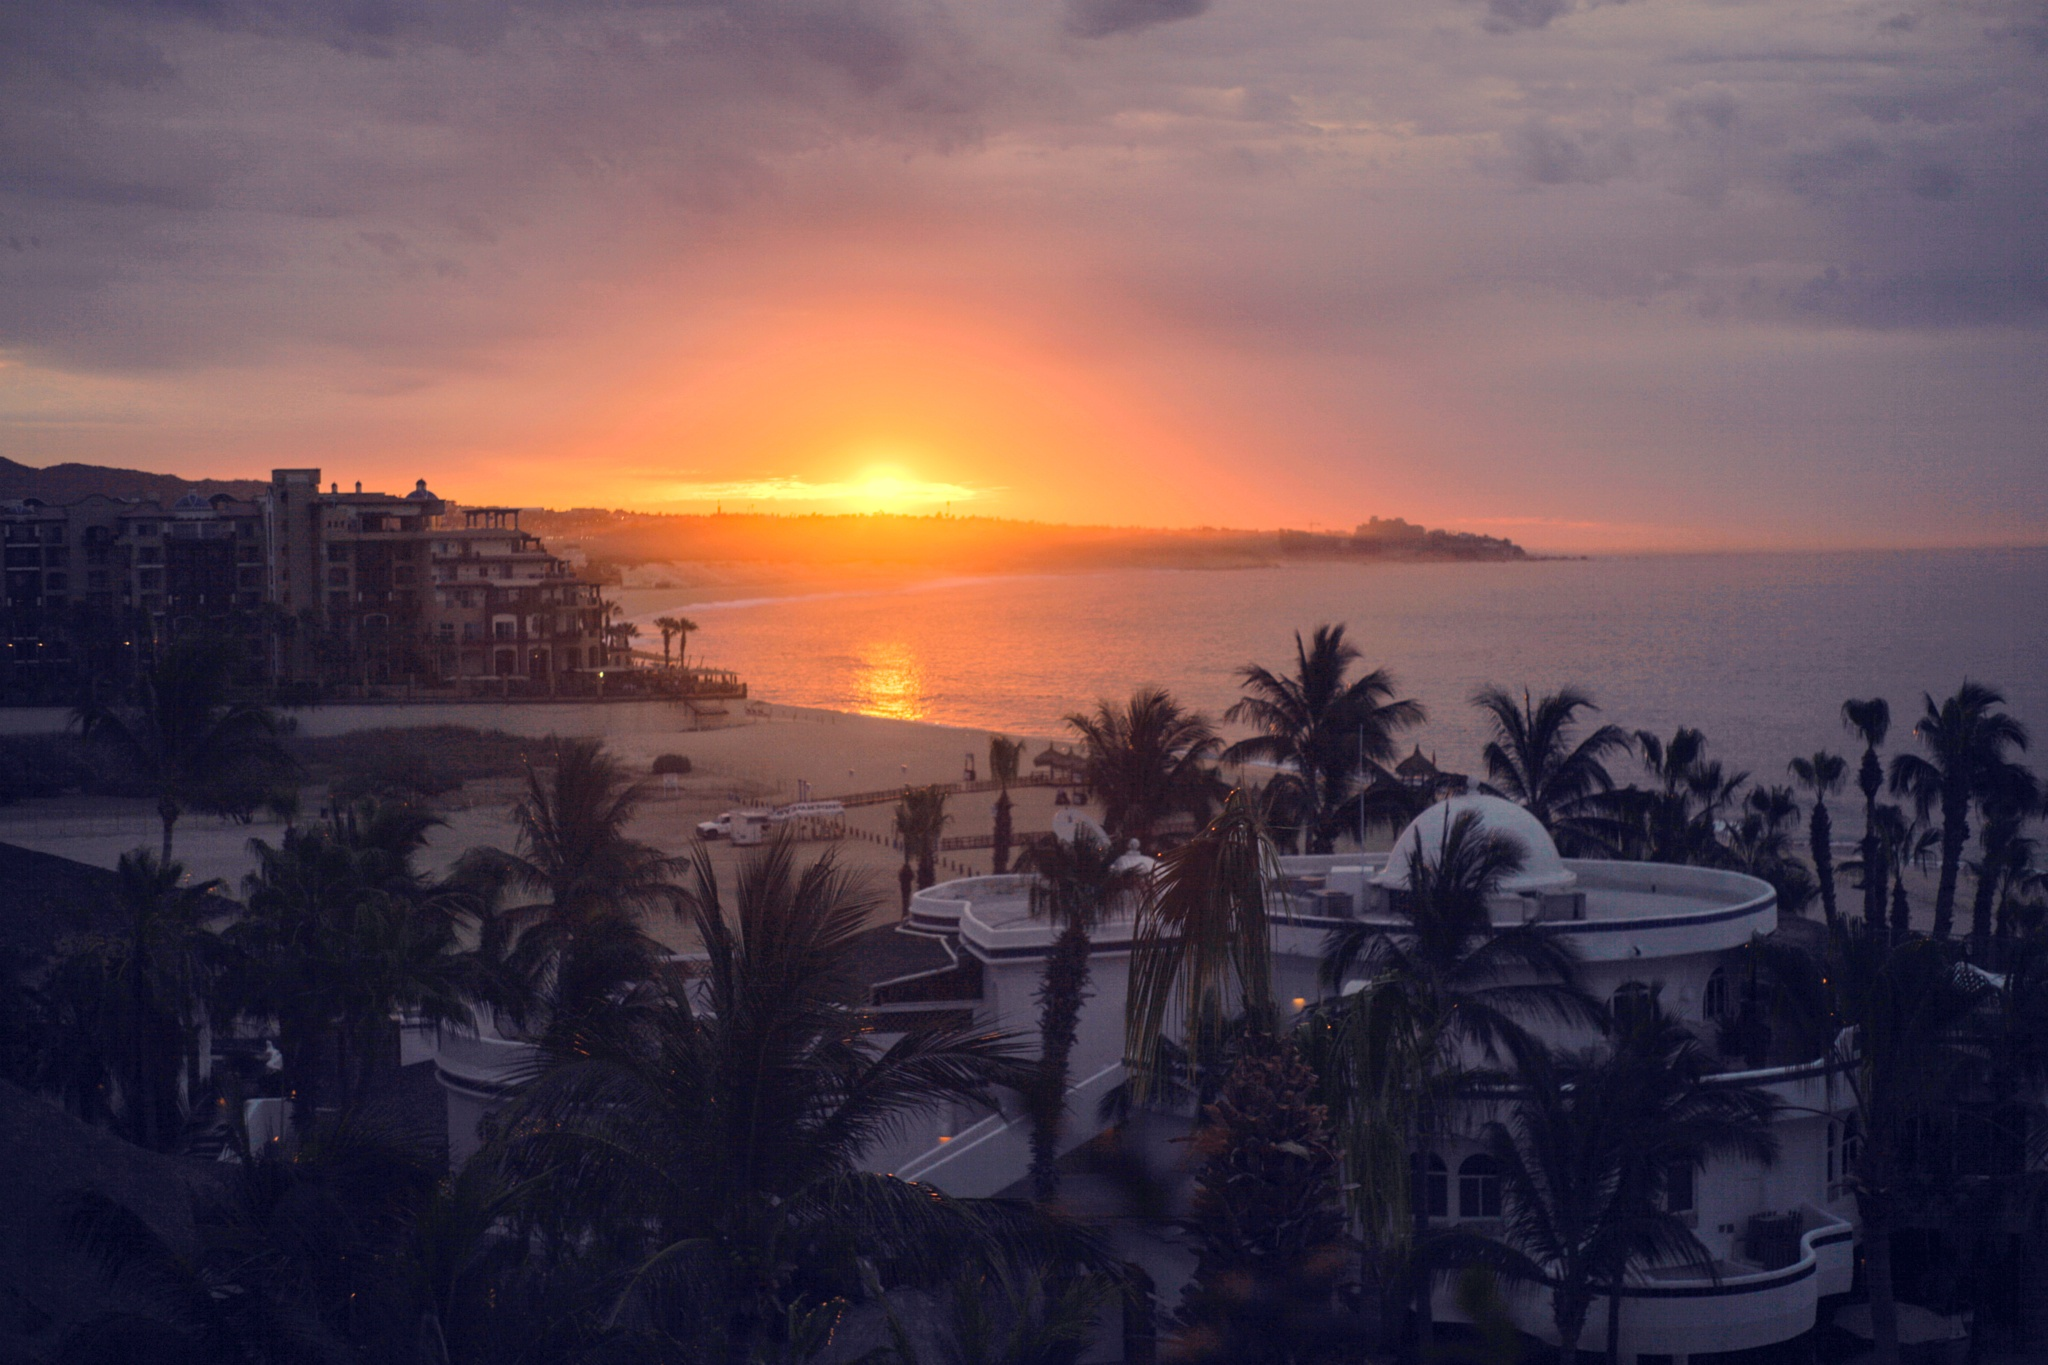 Morning in Mexico by Harmony Sage Lawrence